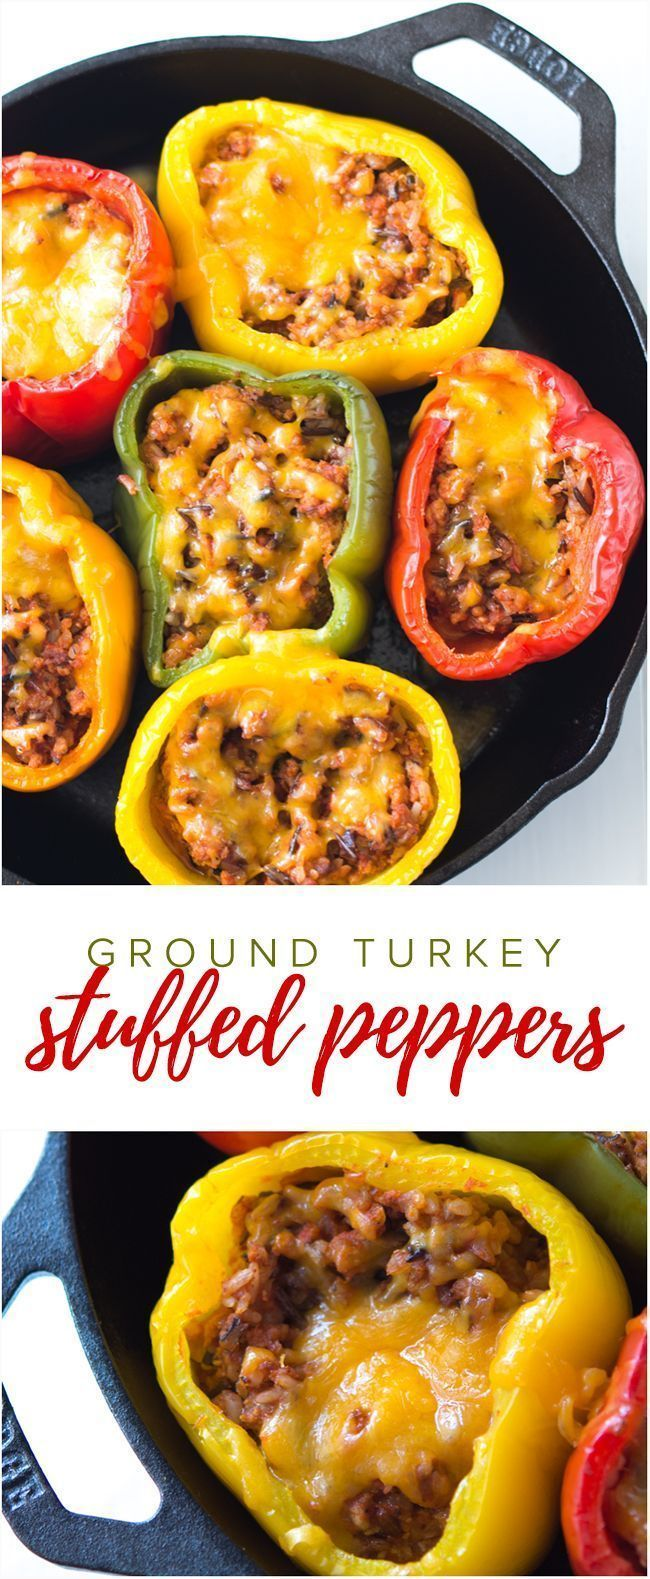 Ground Turkey Stuffed Peppers Recipe This No Fuss Stuffed Peppers Recipe Is The Perfect Easy Family Dinner Dinner Recipes Easy Family Stuffed Peppers Recipes